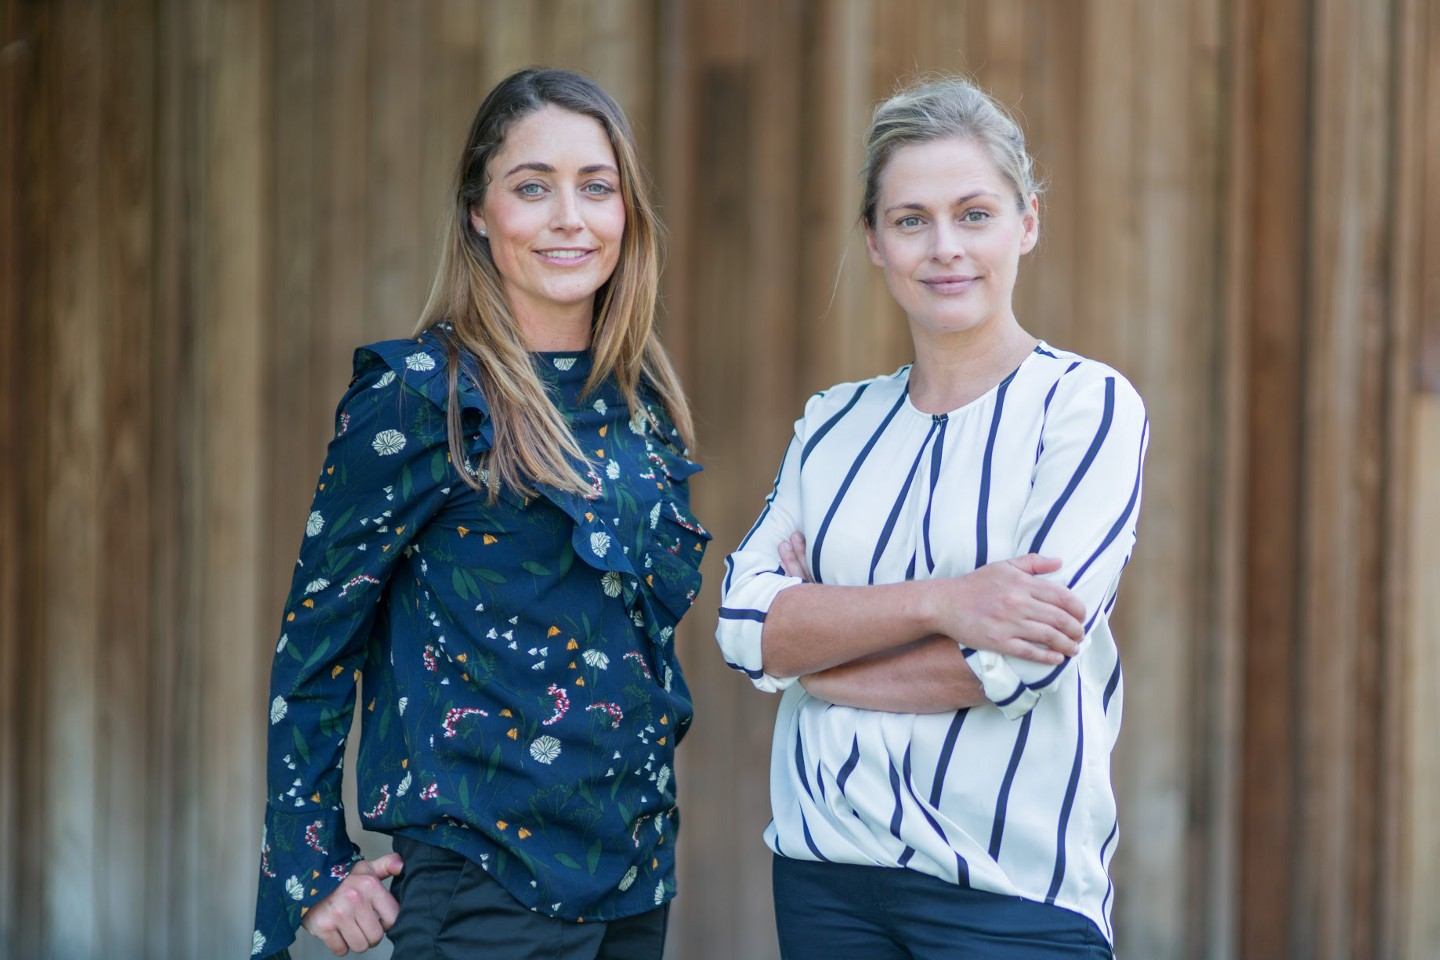 Mentorloop - We invested in Mentorloop's seed round in 2017. Mentorloop is a platform enabling organisations to launch and manage effective mentoring programs. Read more about it in The Sydney Morning Herald.